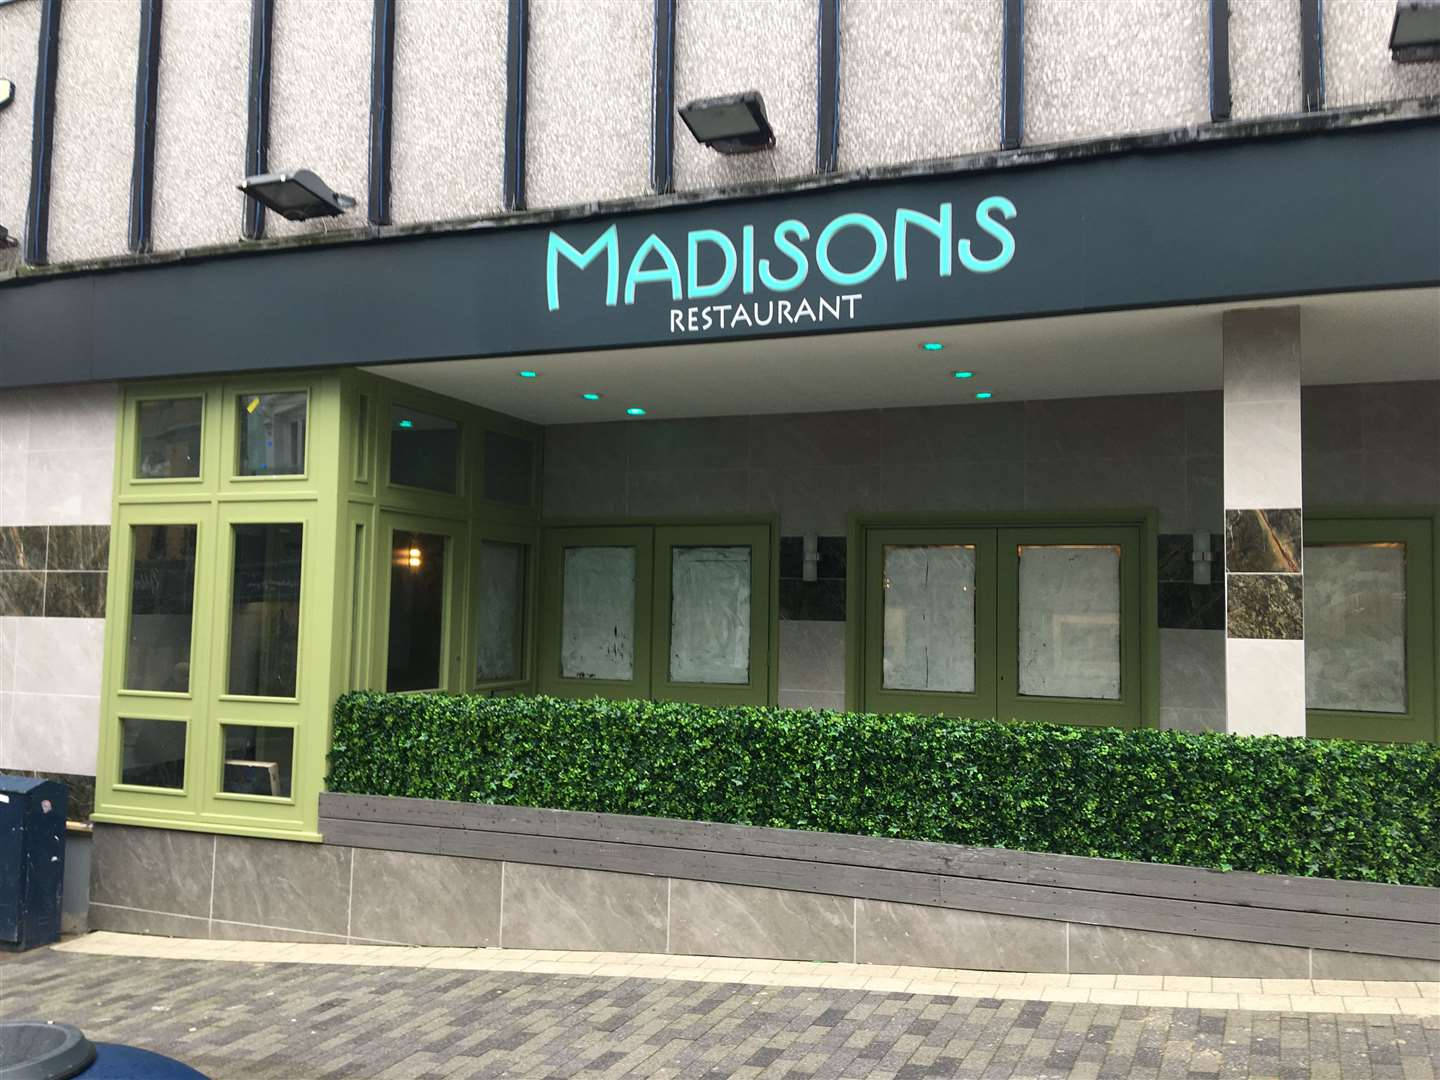 Madisons in Gabriel's Hill, Maidstone